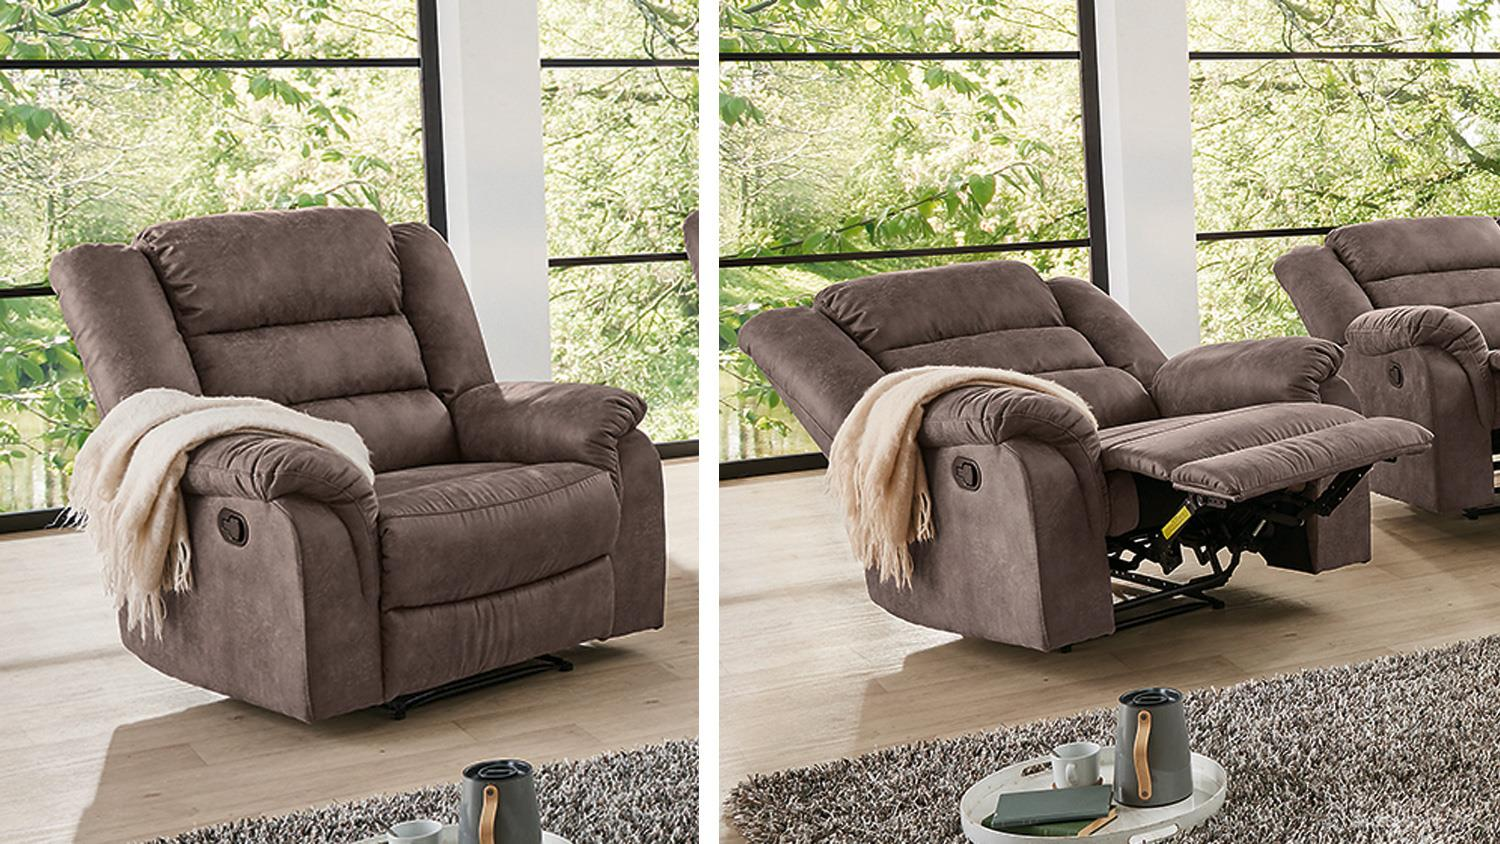 Sessel In Braun Fernsehsessel Cleveland Sessel Sofa Relaxsessel Mit Funktion In Braun